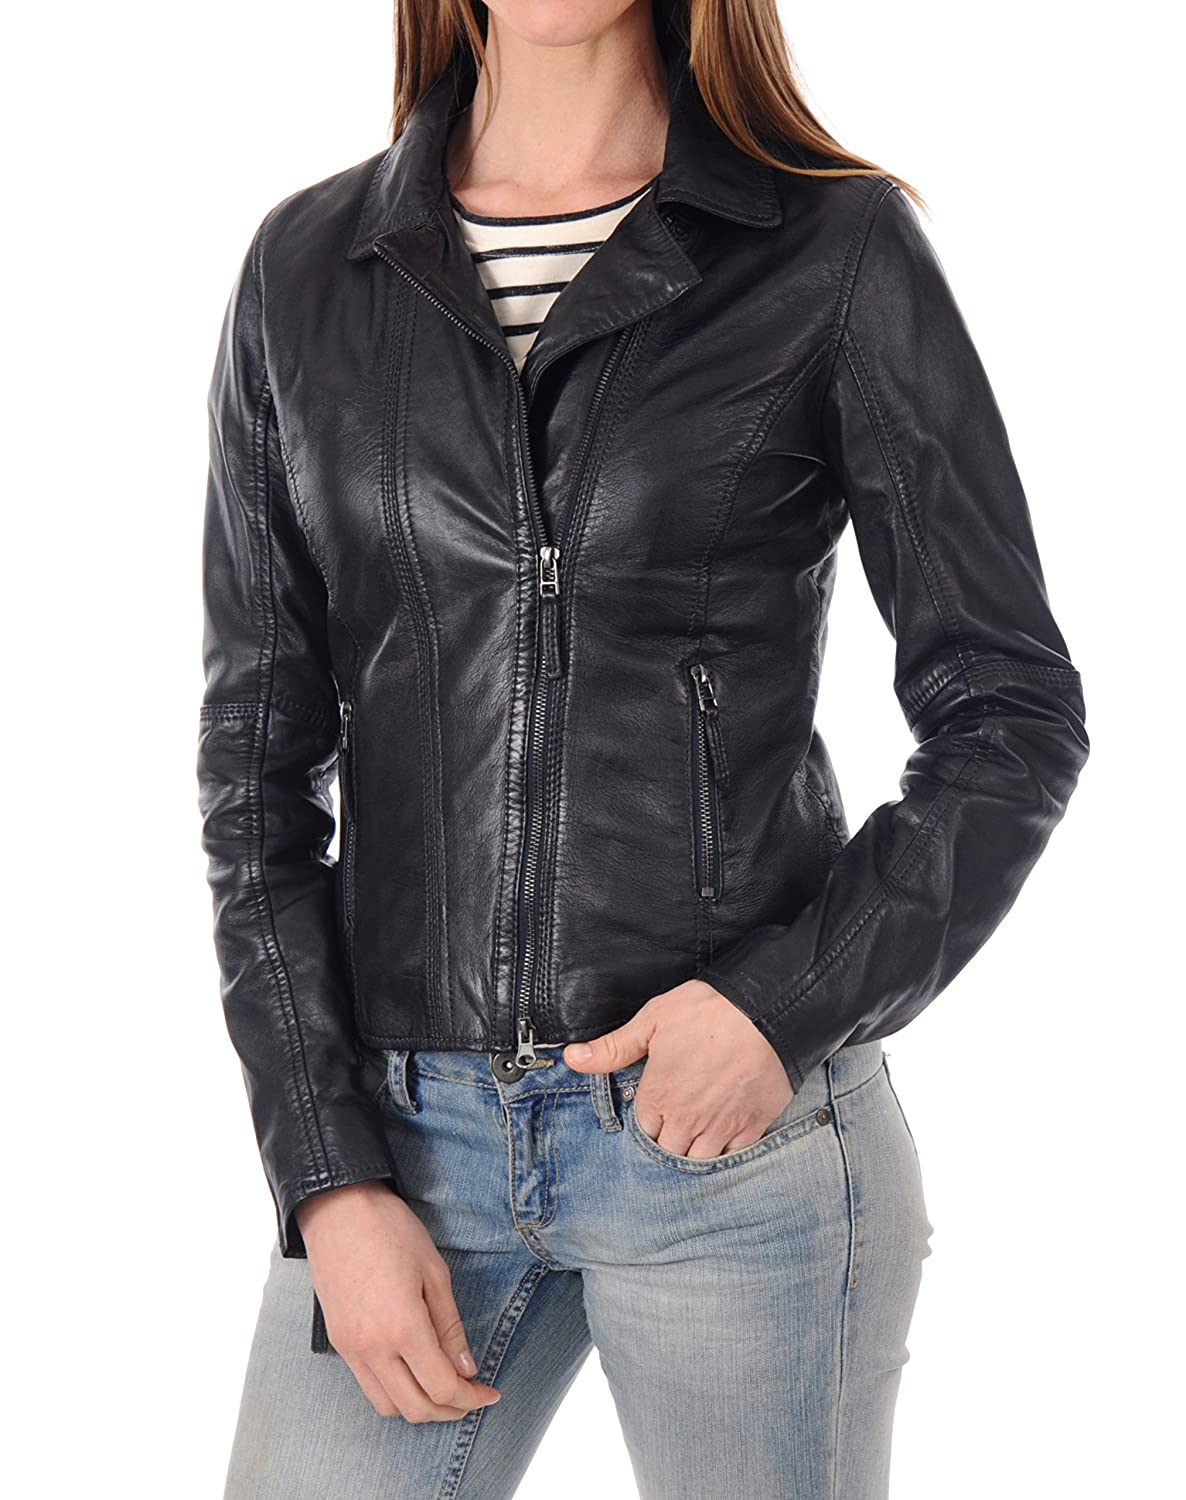 Black21fc DOLLY LAMB 100% Leather Jacket for Women  Slim Fit & Quilted  Moto, Bomber, Biker Winter Casual Wear